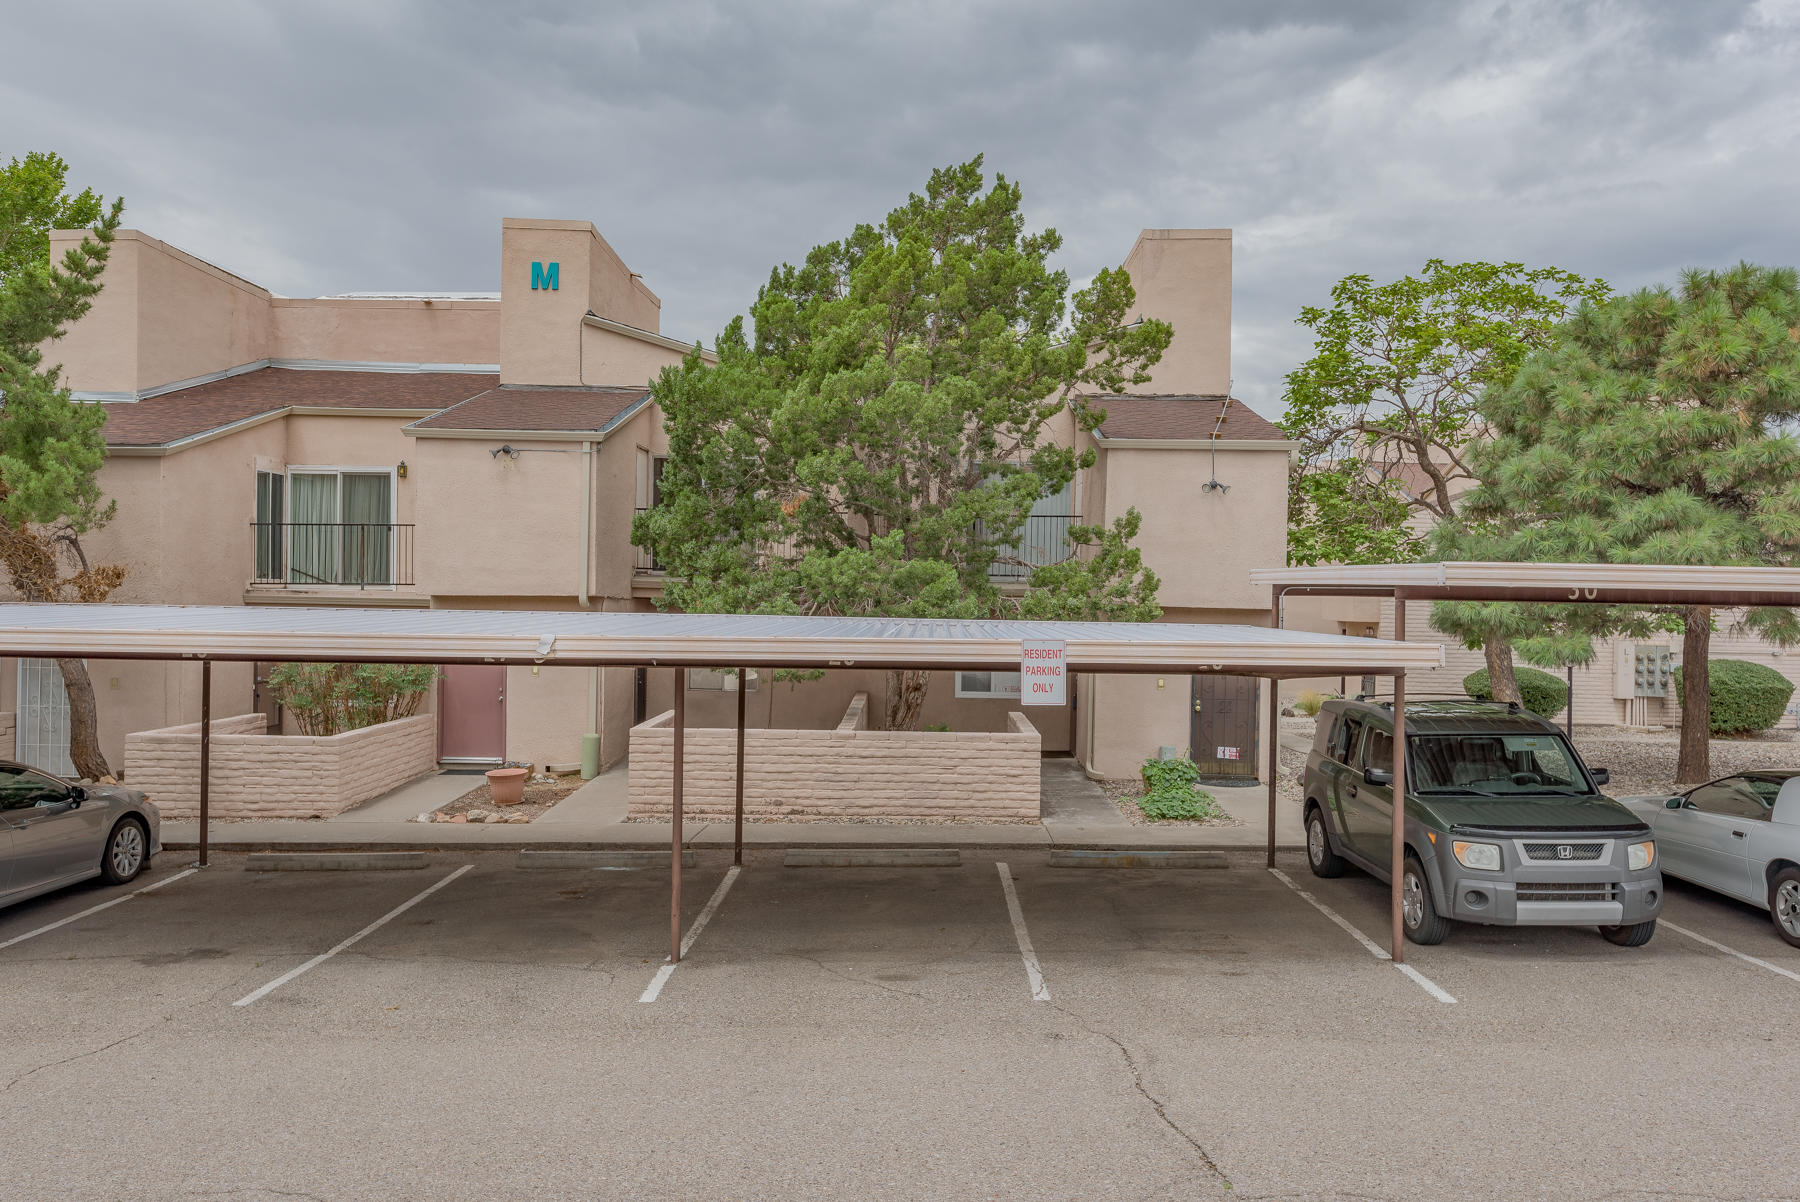 Back on the Market. Welcome to Sandia Plaza Condominiums! This move-in ready unit is ready to be yours! Pride of ownership shows. Carpet has been replaced (2021) throughout as well as new toilet, bathroom vanity, vinyl window and vinyl sliding glass door. The walk-in closet features hard wired high speed internet that can be used for an office. Master bedroom leads out to the rear patio and features replaced extended fence line with gate for added privacy. Complex grounds and Pool are maintained by the HOA. Schedule your tour today!